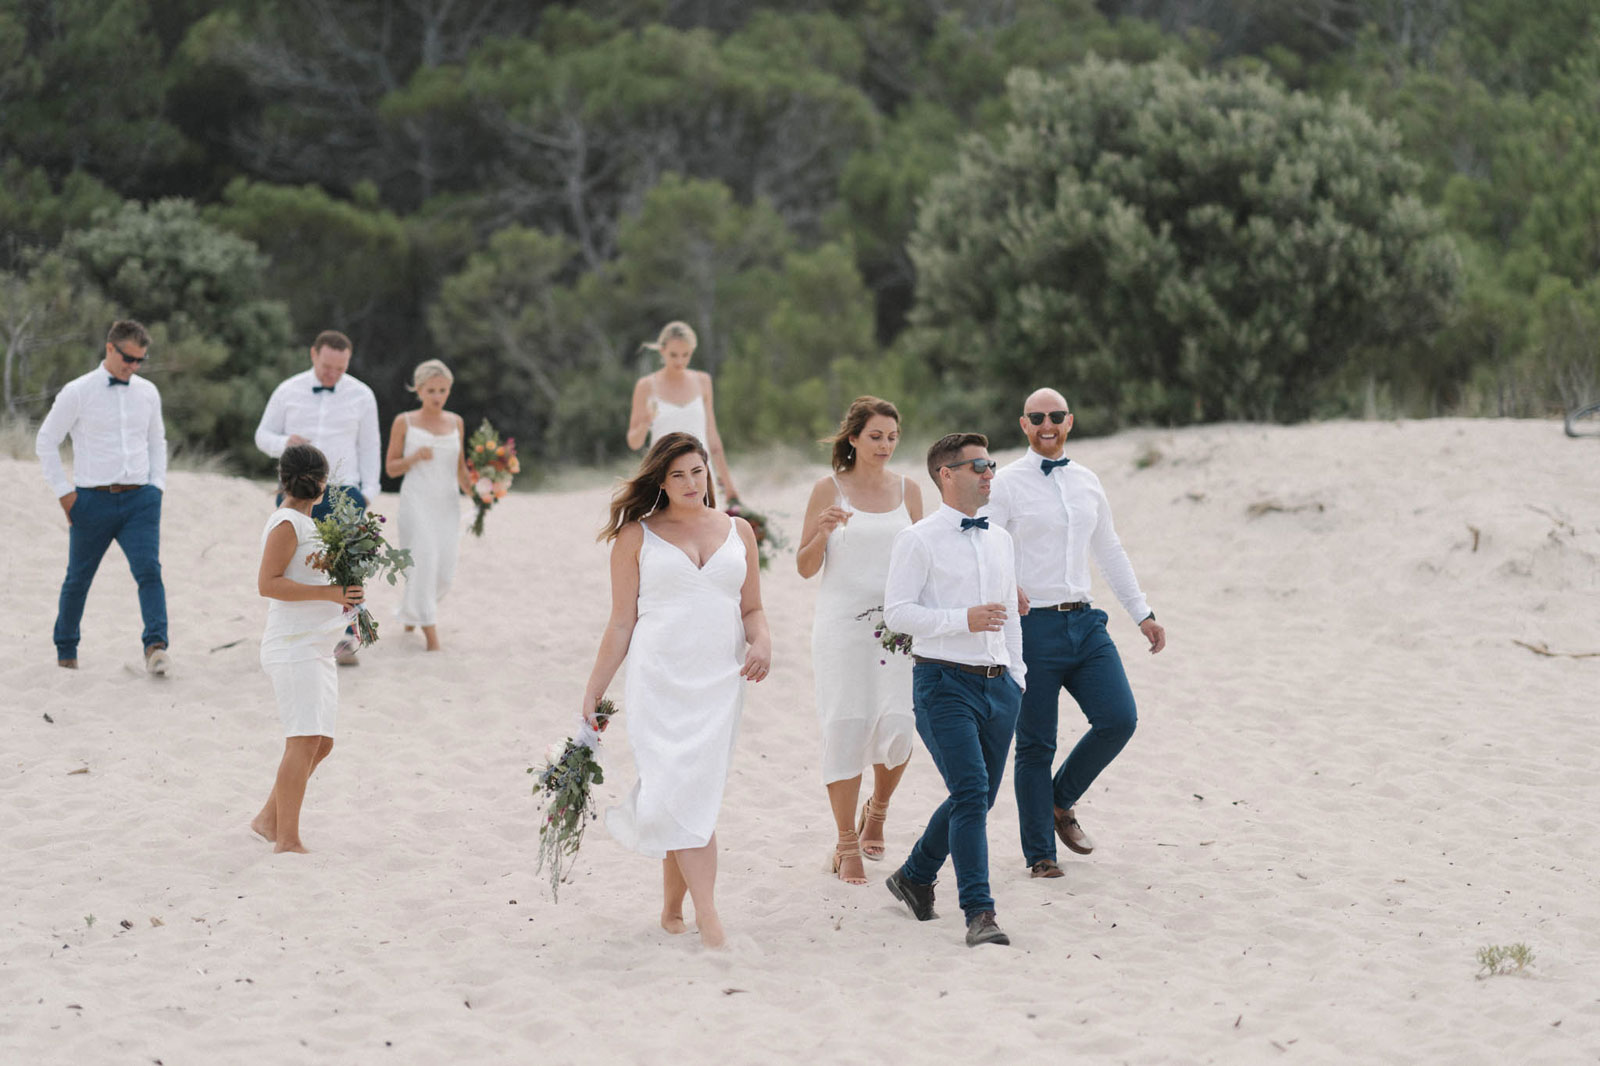 newfound-a-b-opoutere-coastal-camping-coromandel-wedding-wedding-photographer-135